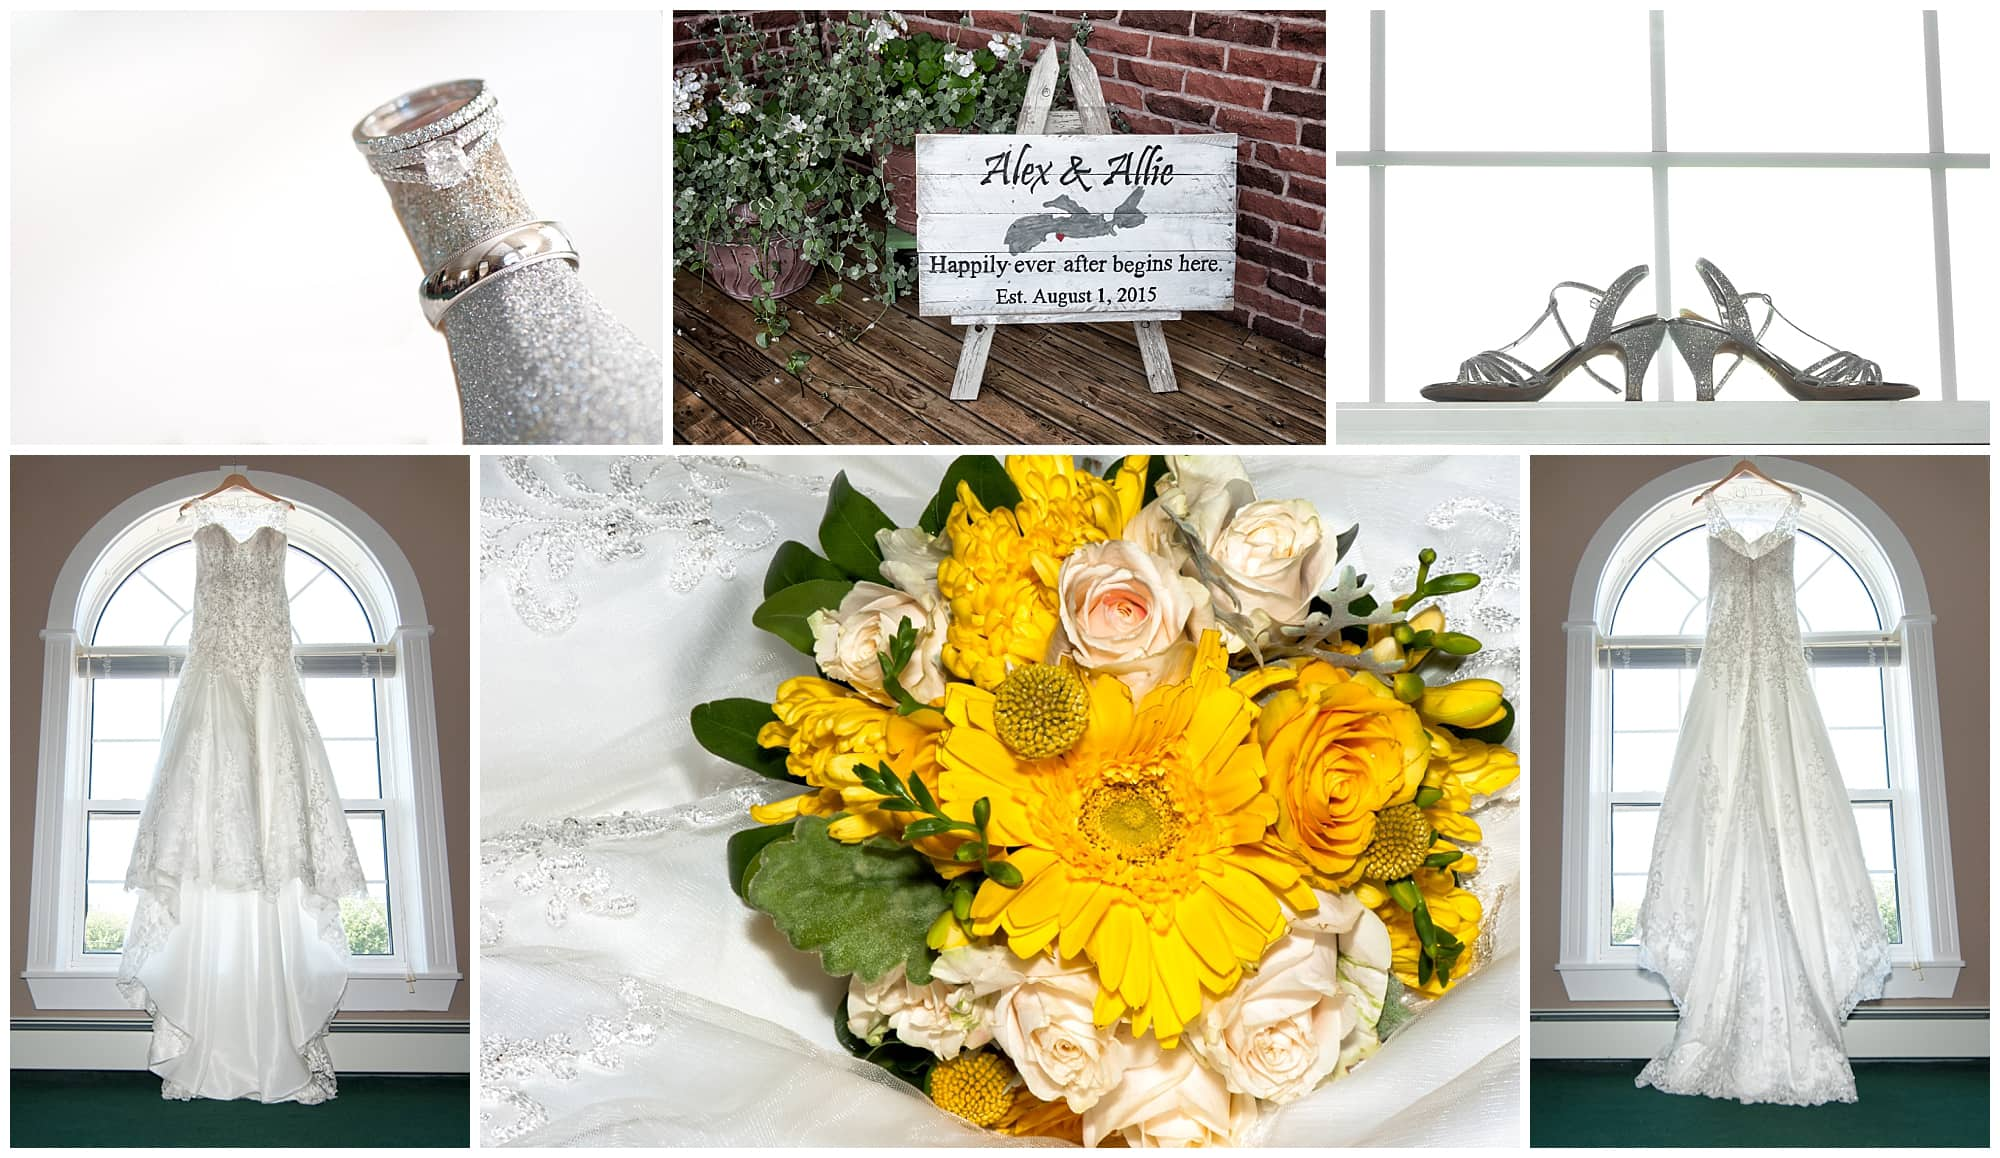 A collage of the bride's wedding dress, bridal bouquet, wedding shoes and wedding rings with their wedding sign displayed outside the house.